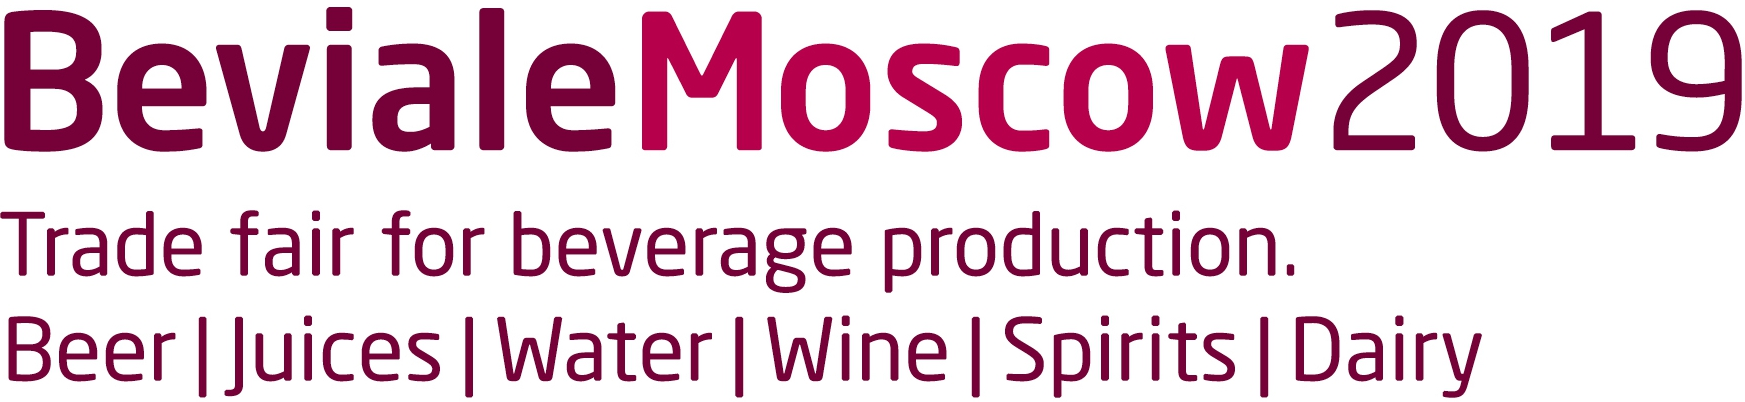 BrauBeviale Moskau Moscow Messe Trade Fair